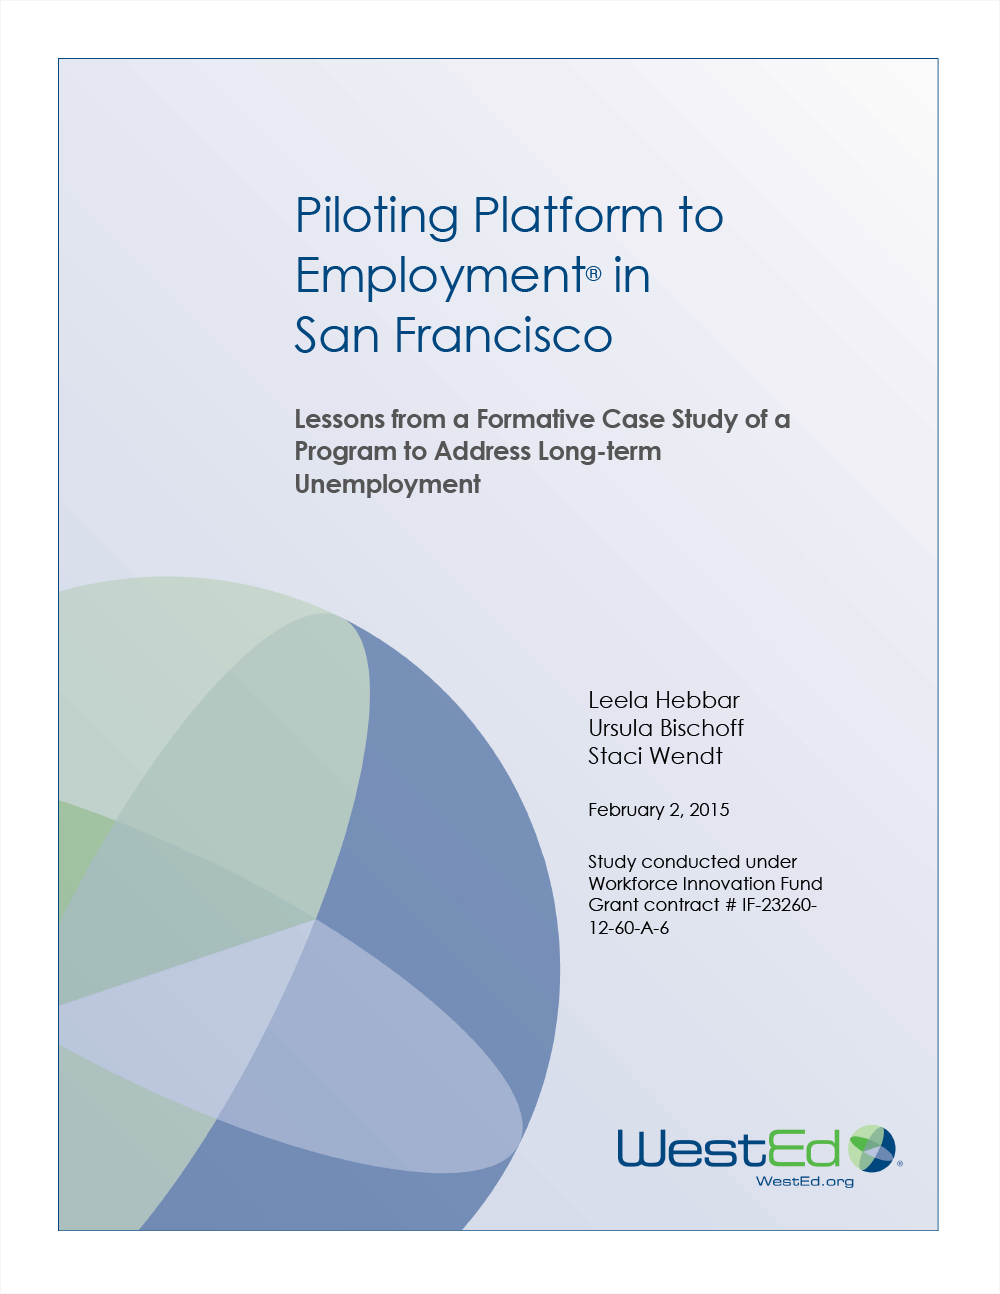 Cover for Piloting Platform to Employment in San Francisco: Lessons from a Formative Case Study of a Program to Address Long-term Unemployment